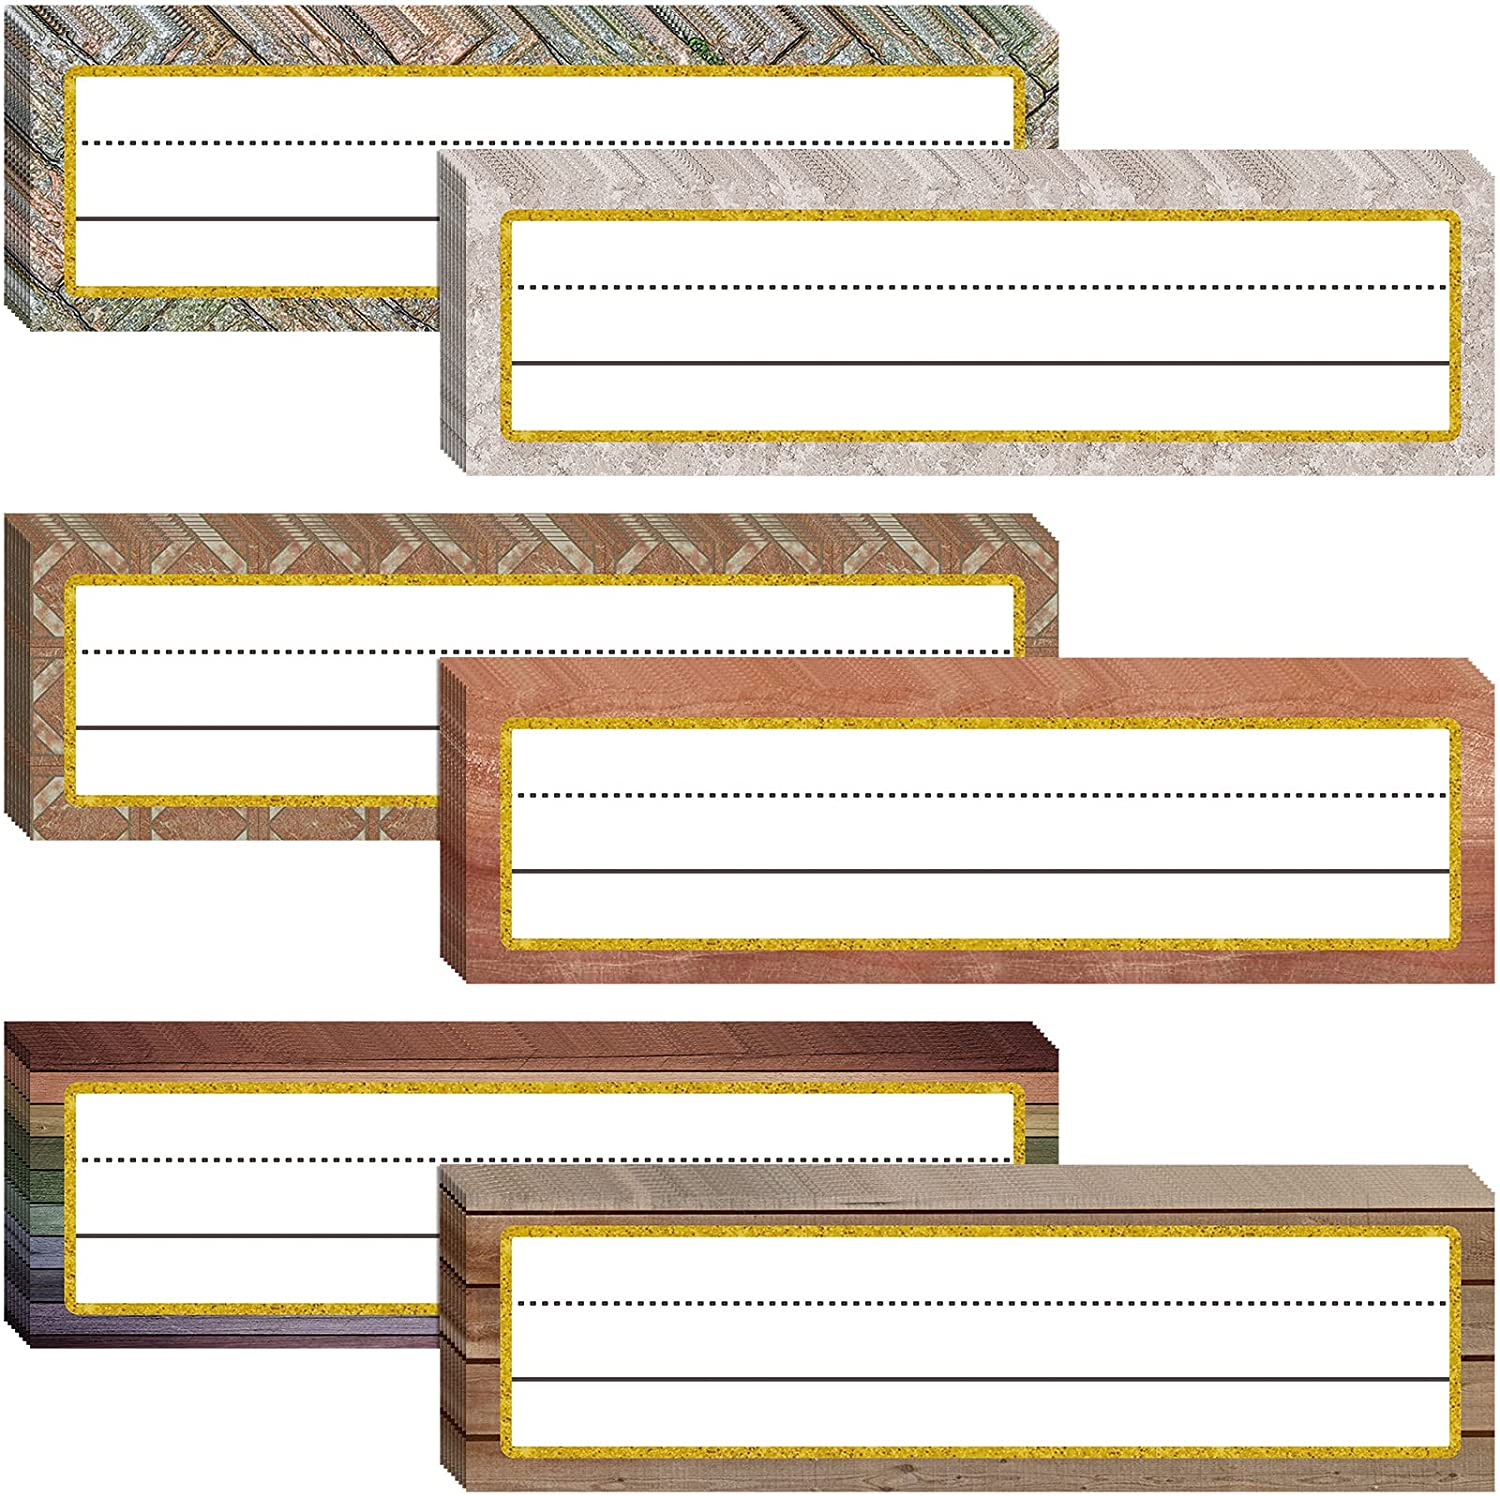 48 Pieces Rustic Name Plates for Desk Industrial Name Tags Labels Stickers Self-Adhesive Labels Bulletin Board Farmhouse Classroom Decoration for Classroom Desk Office Supplies, 11.8 x 3 Inches